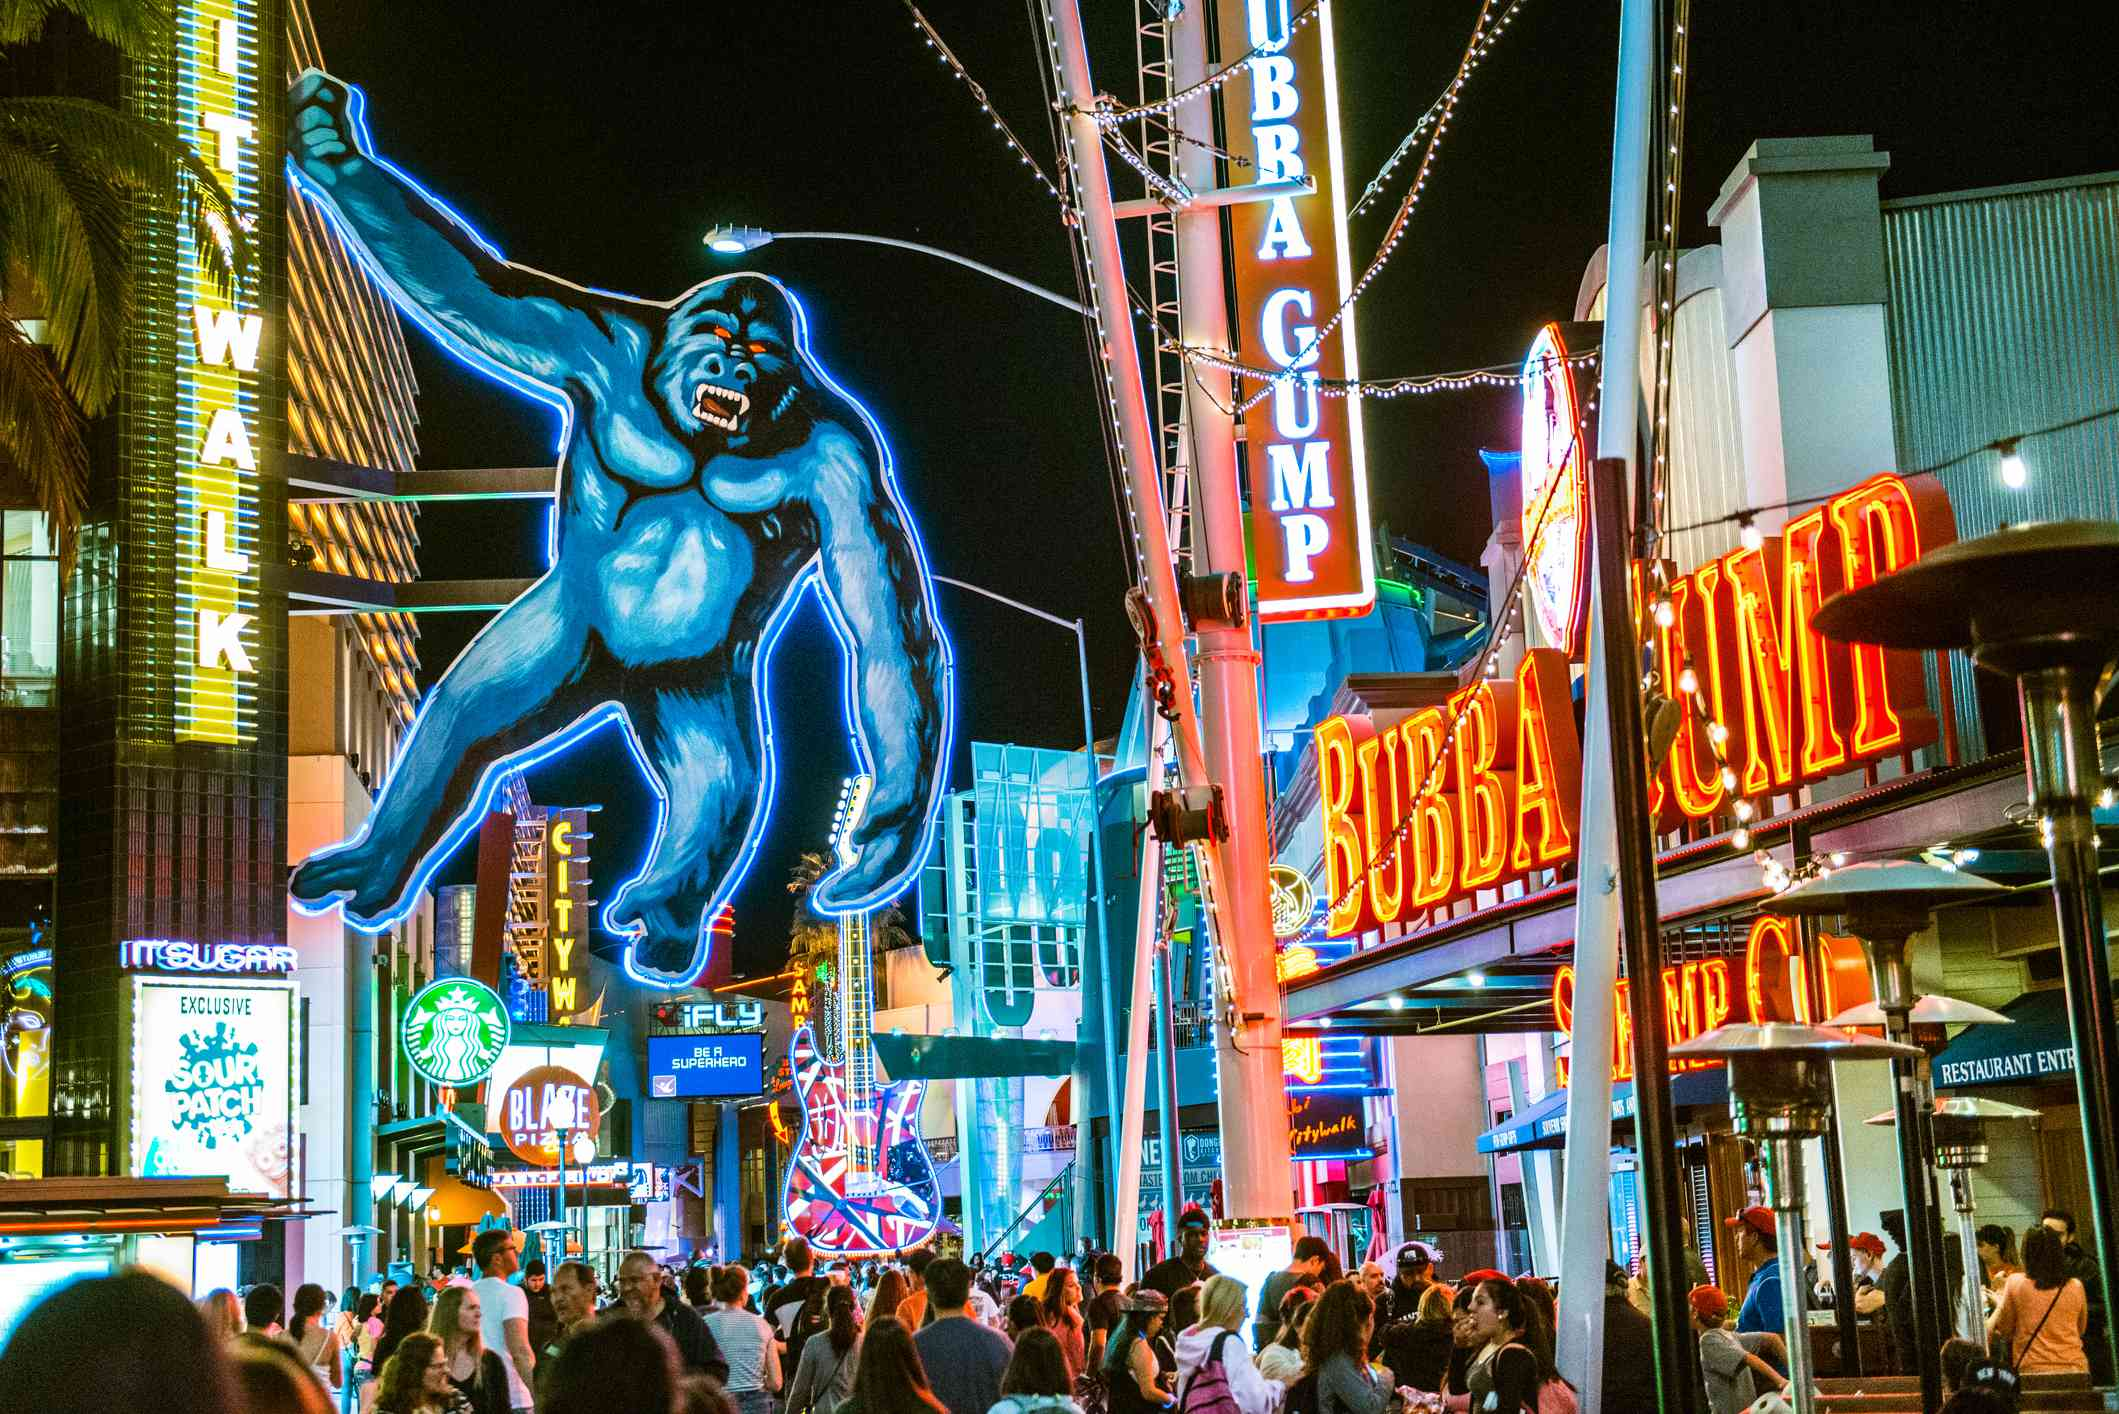 Neon Signs and shops at Universal CityWalk